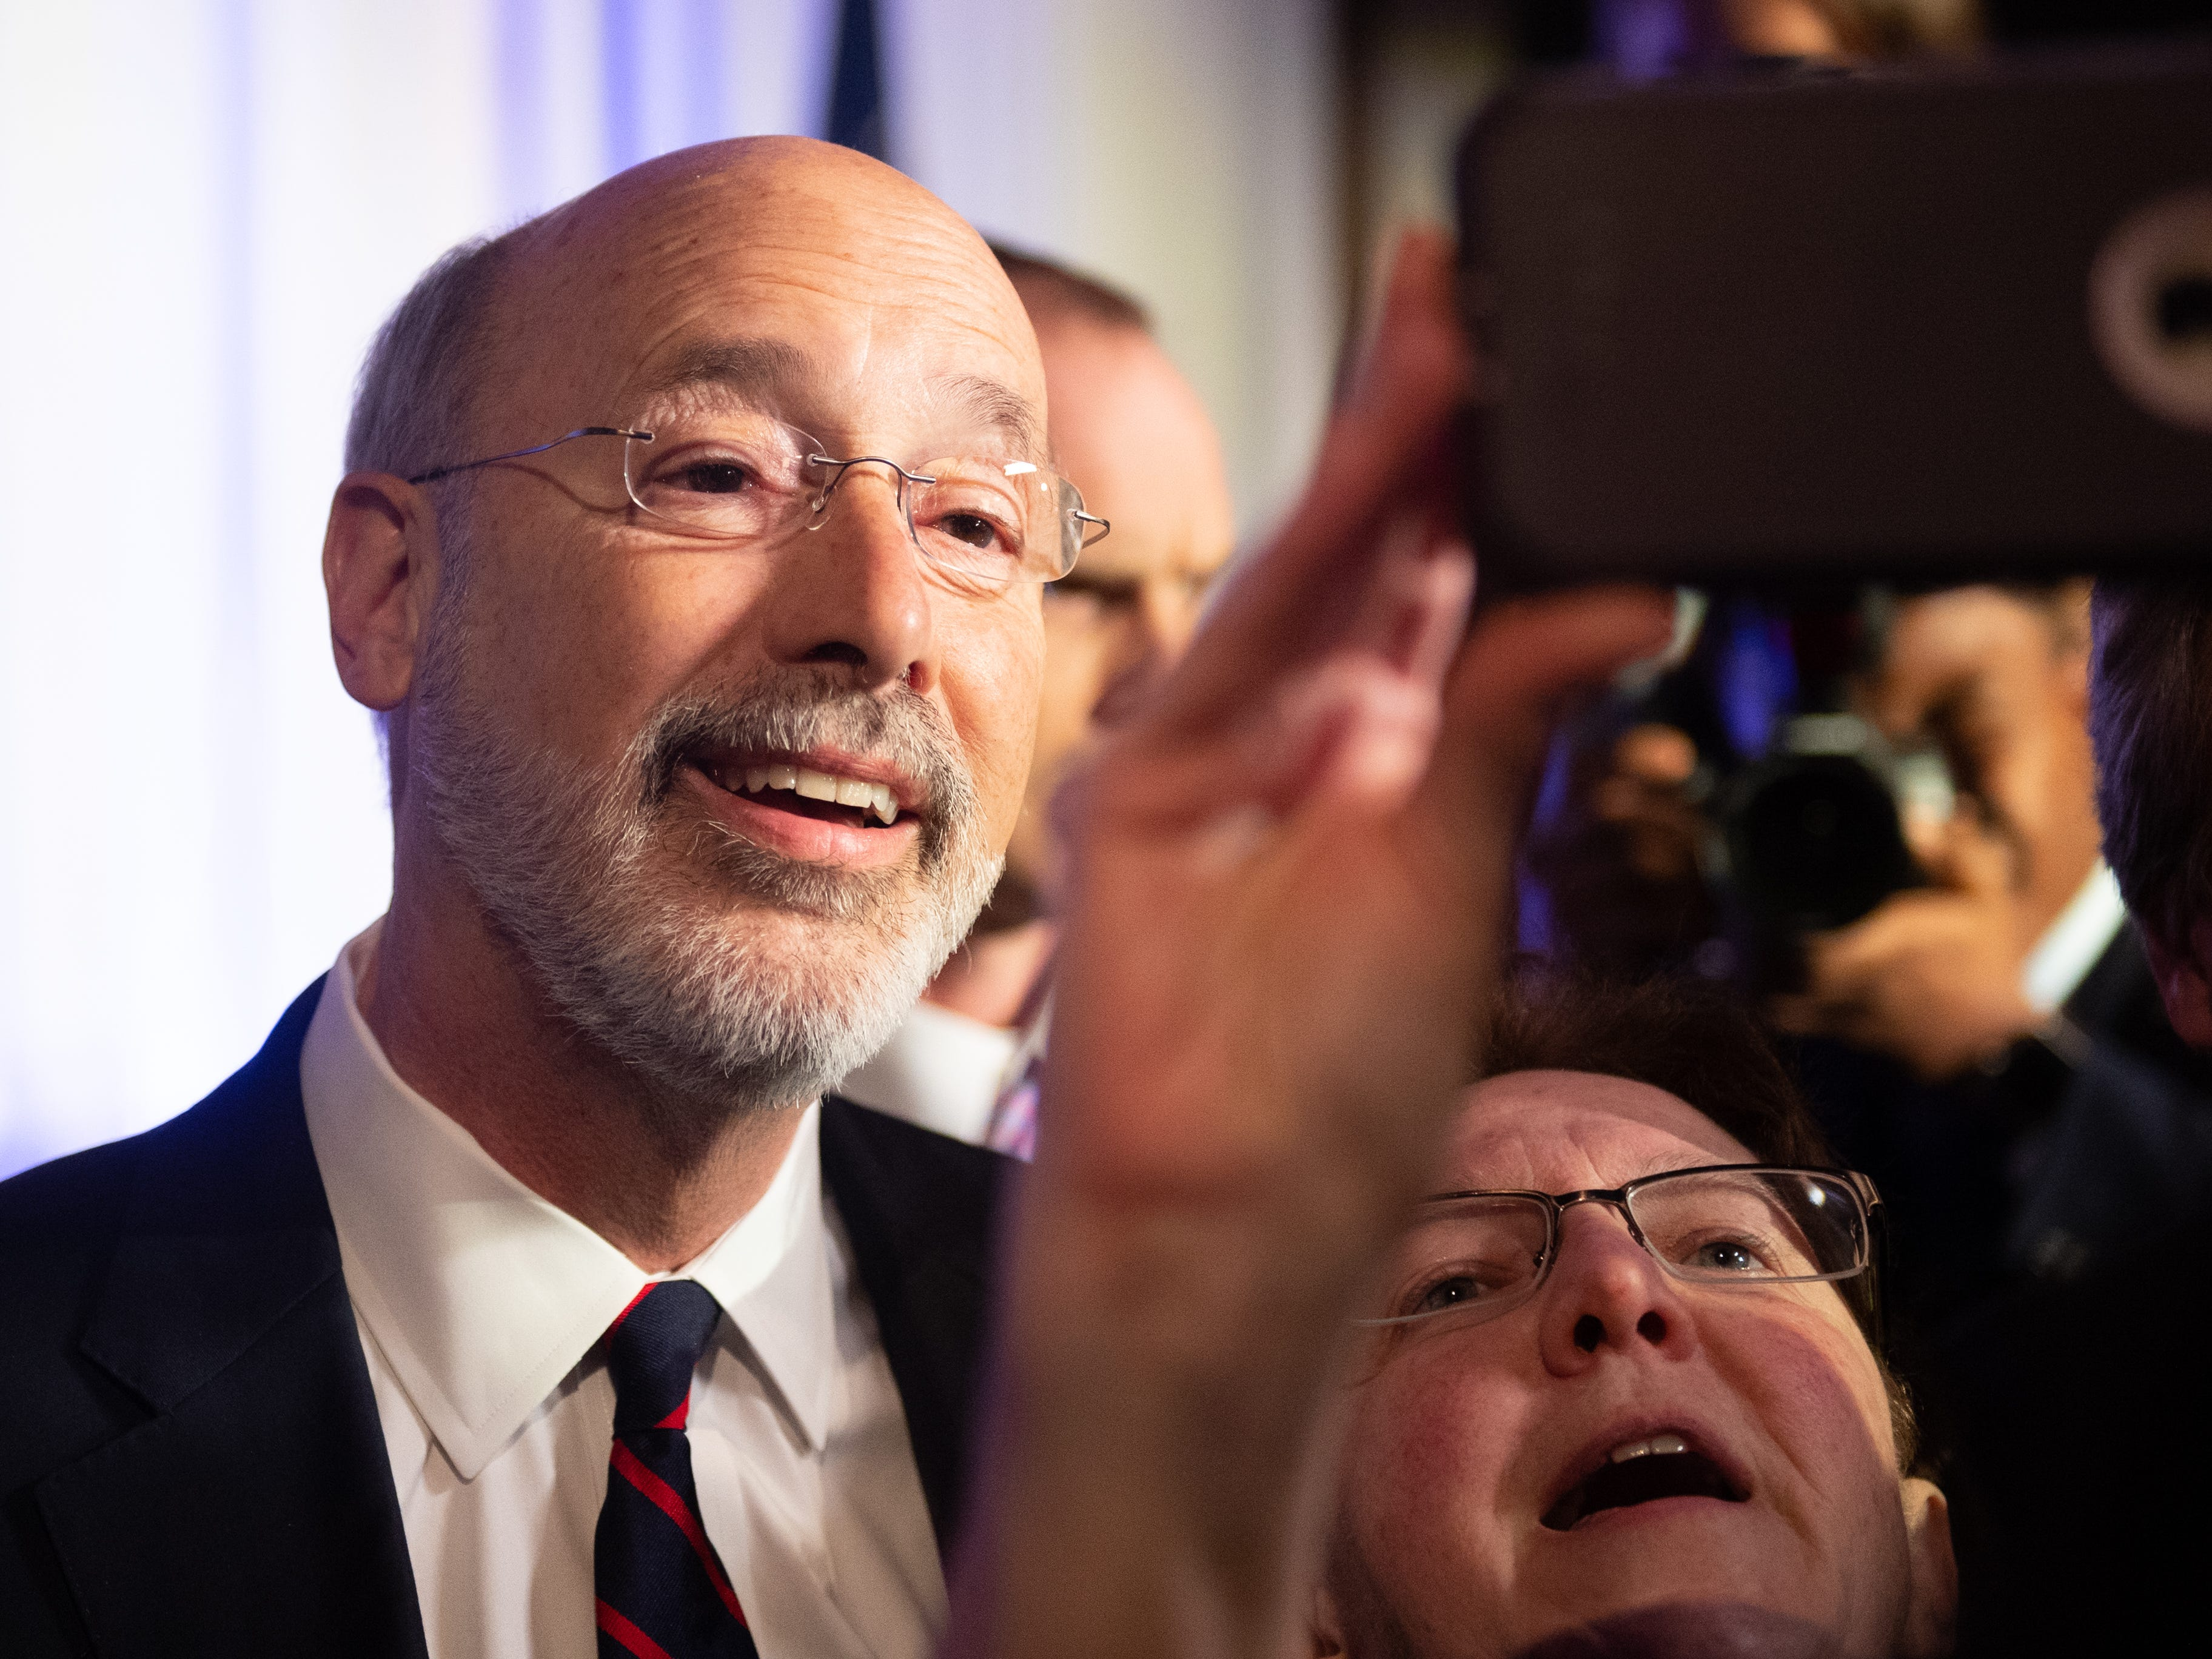 Gov. Wolf takes part in Festivus, shares grievances from PA residents